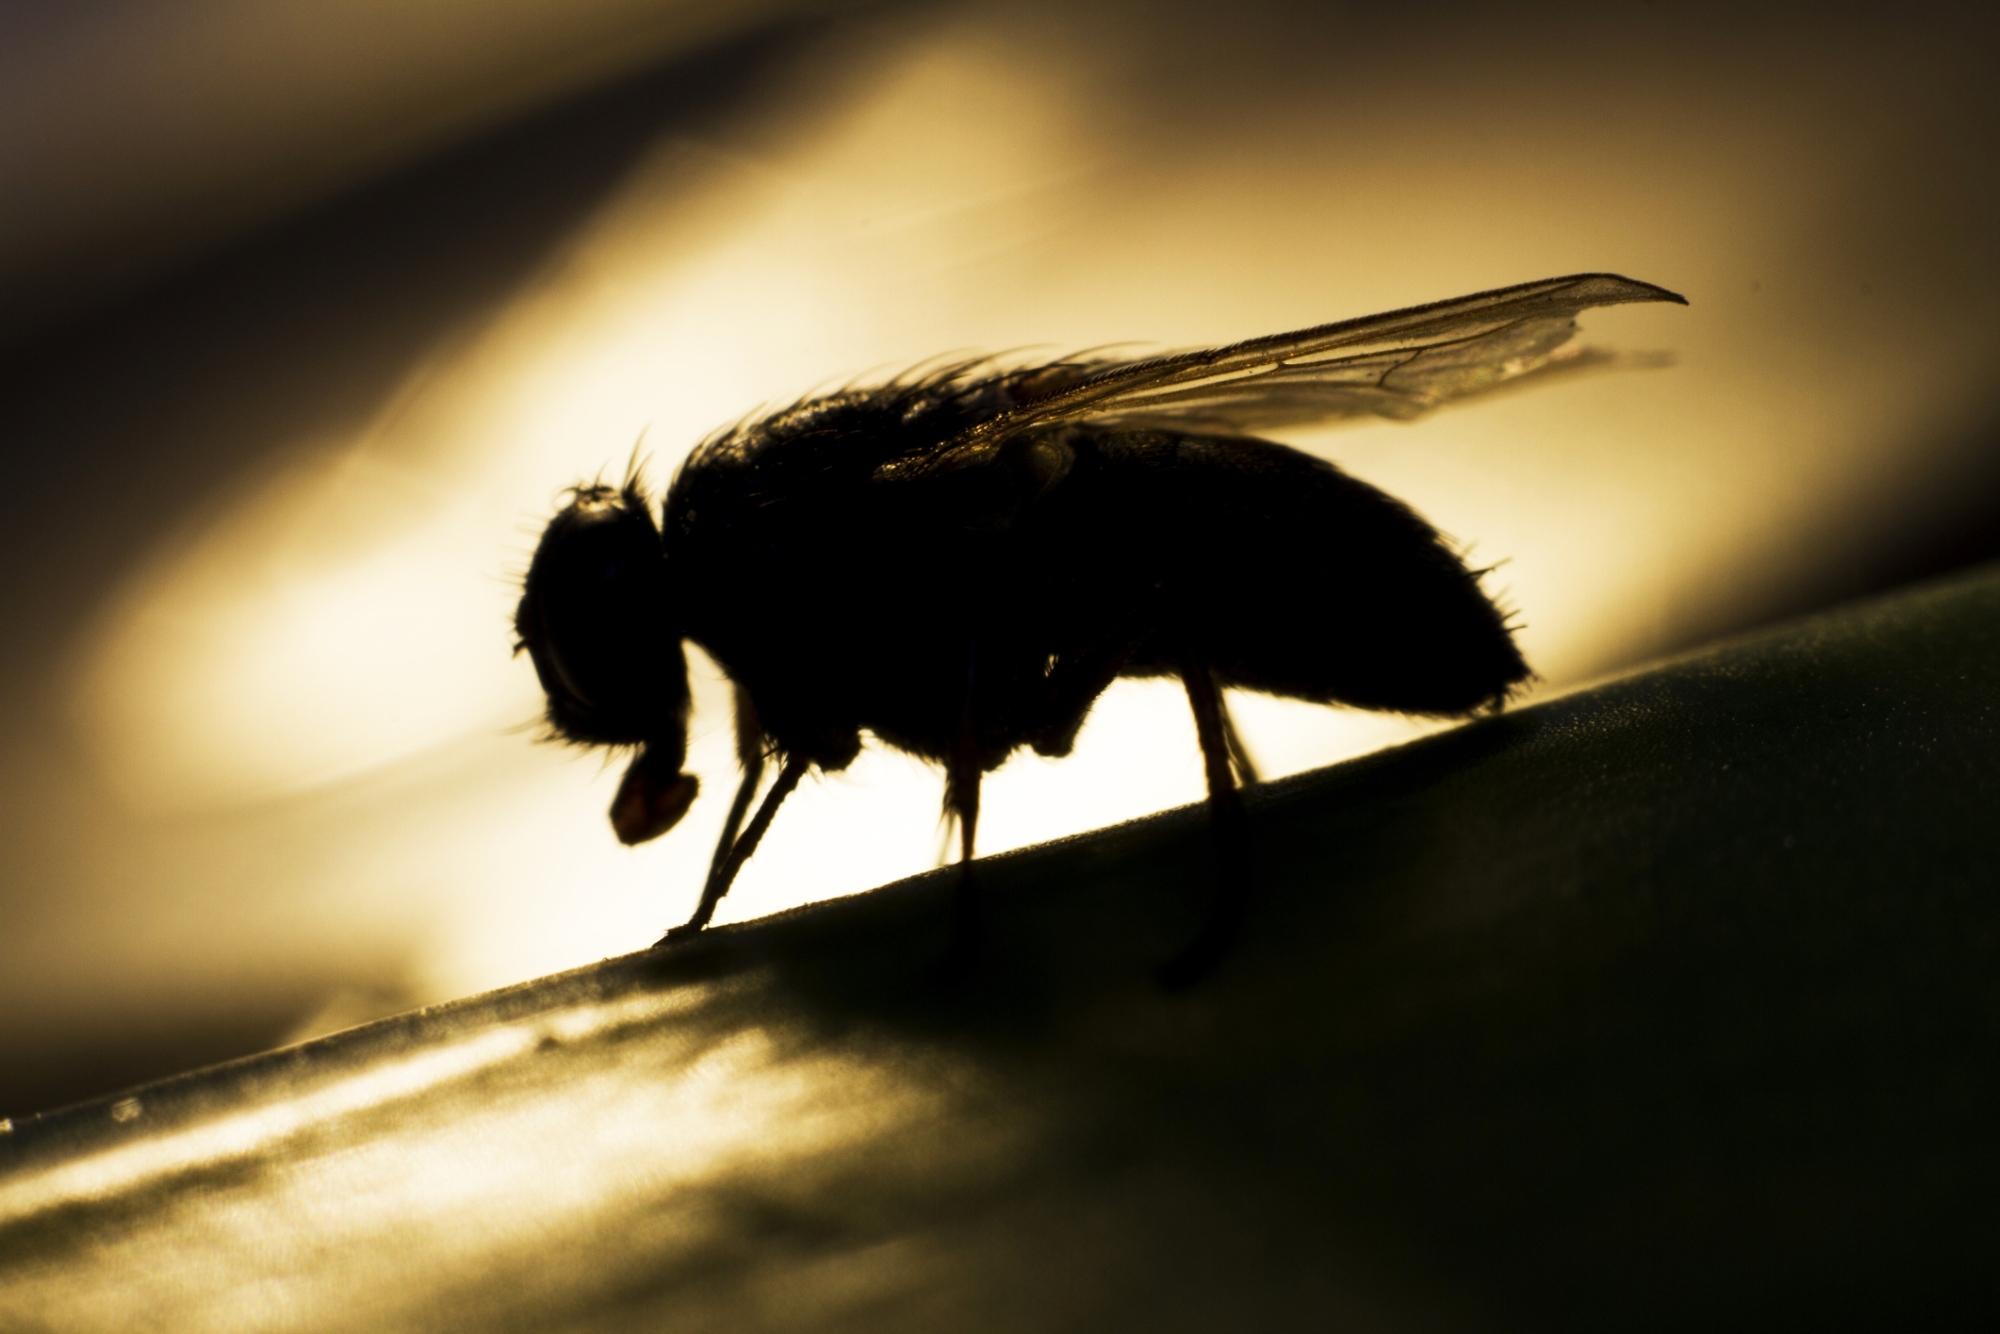 Growers worry fruit fly infestation could worsen.